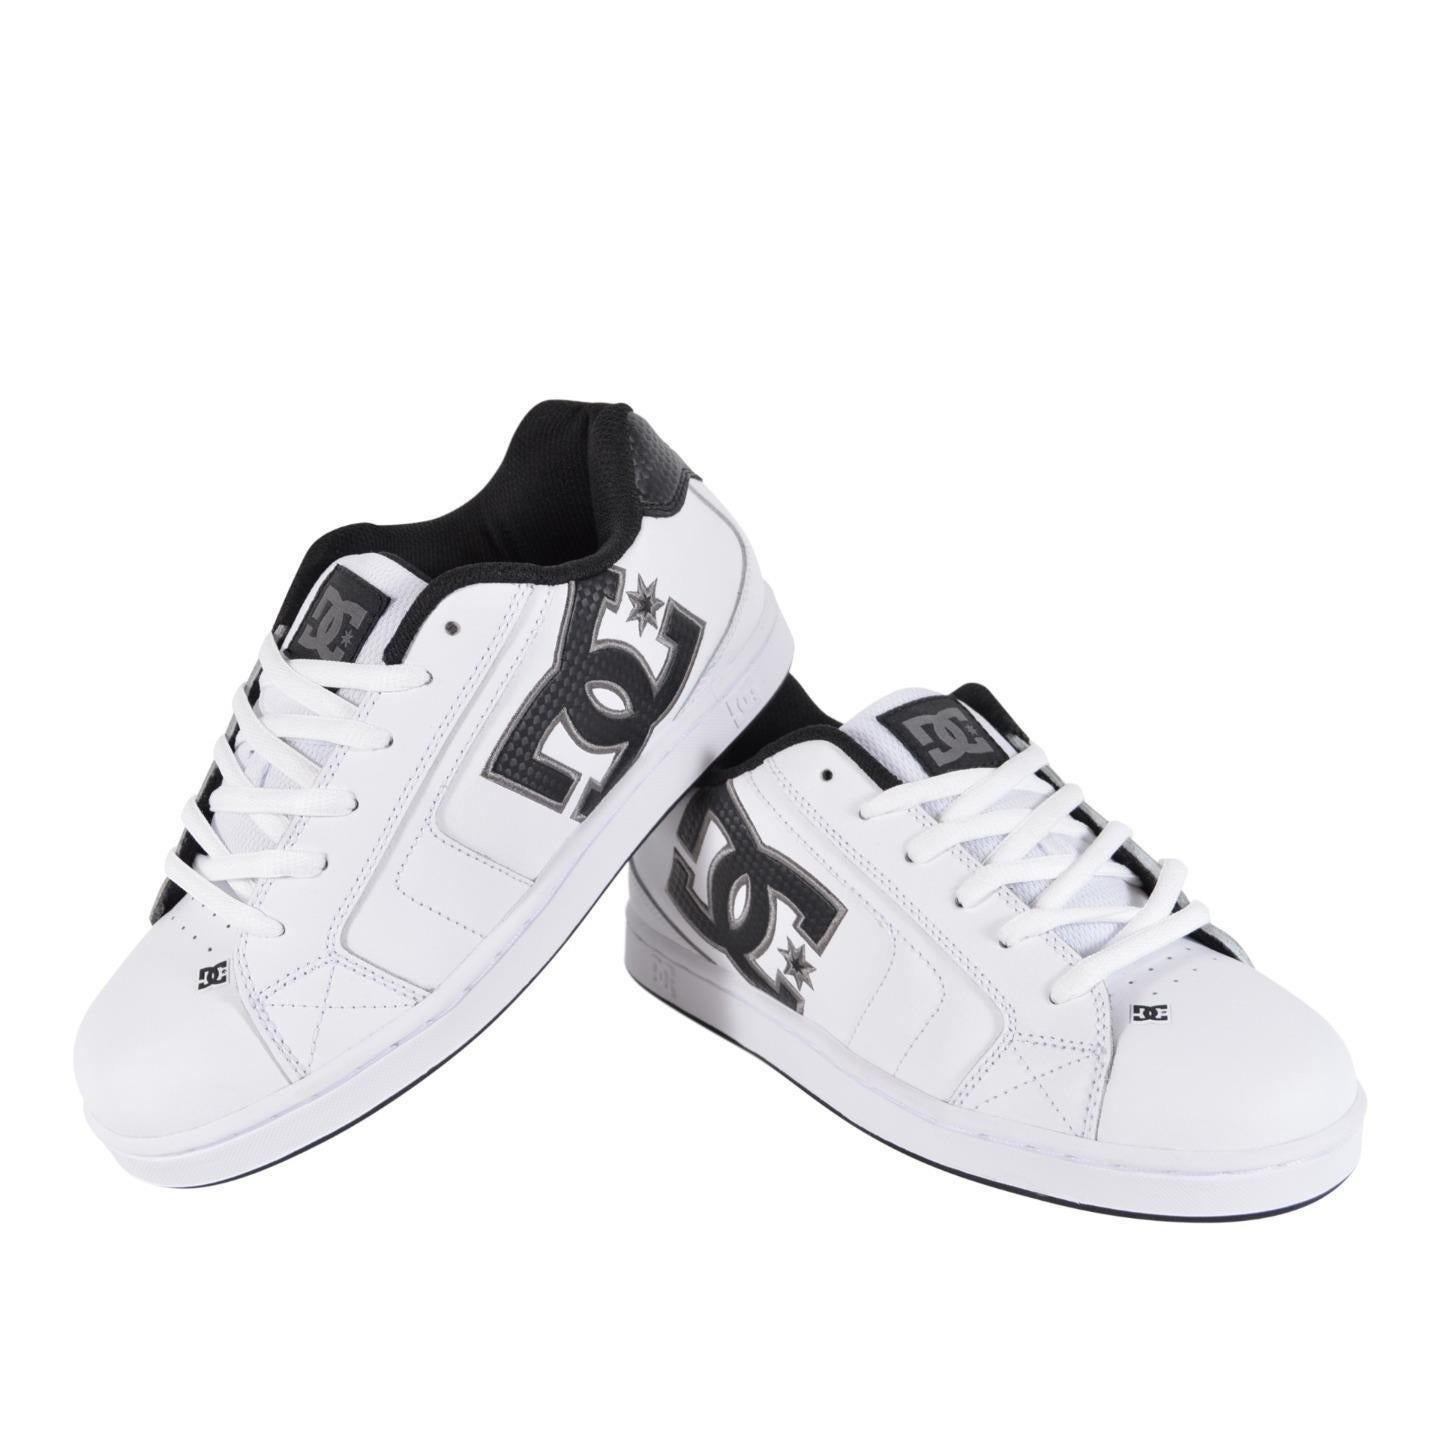 cde4d64c009bff DC Shoes Men s White Leather NET 302361 Skateboard Sneakers Tennis Shoes. by  DC Shoes